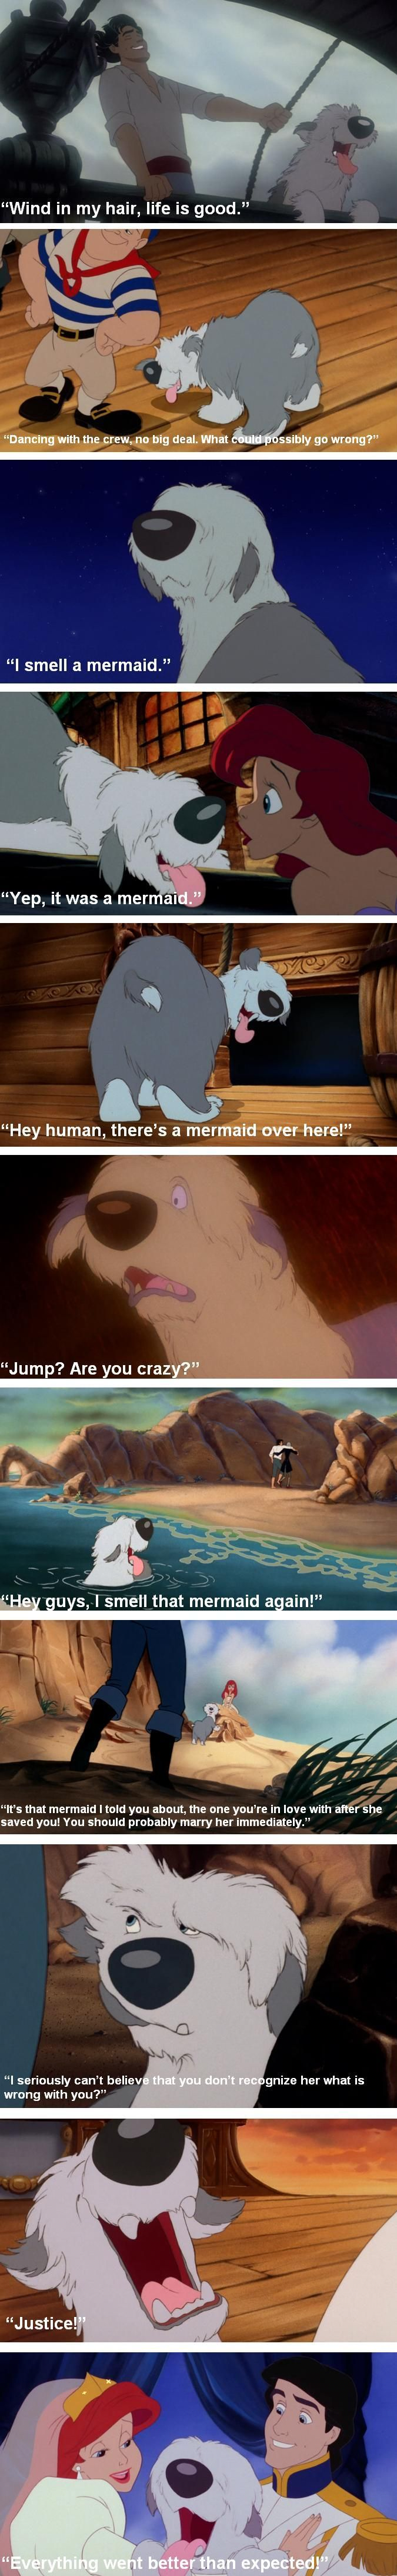 You ever notice how Max, Prince Eric's dog from The Little Mermaid, kind of knows what is going on more than Prince Eric does? He's pretty observant for a dog.